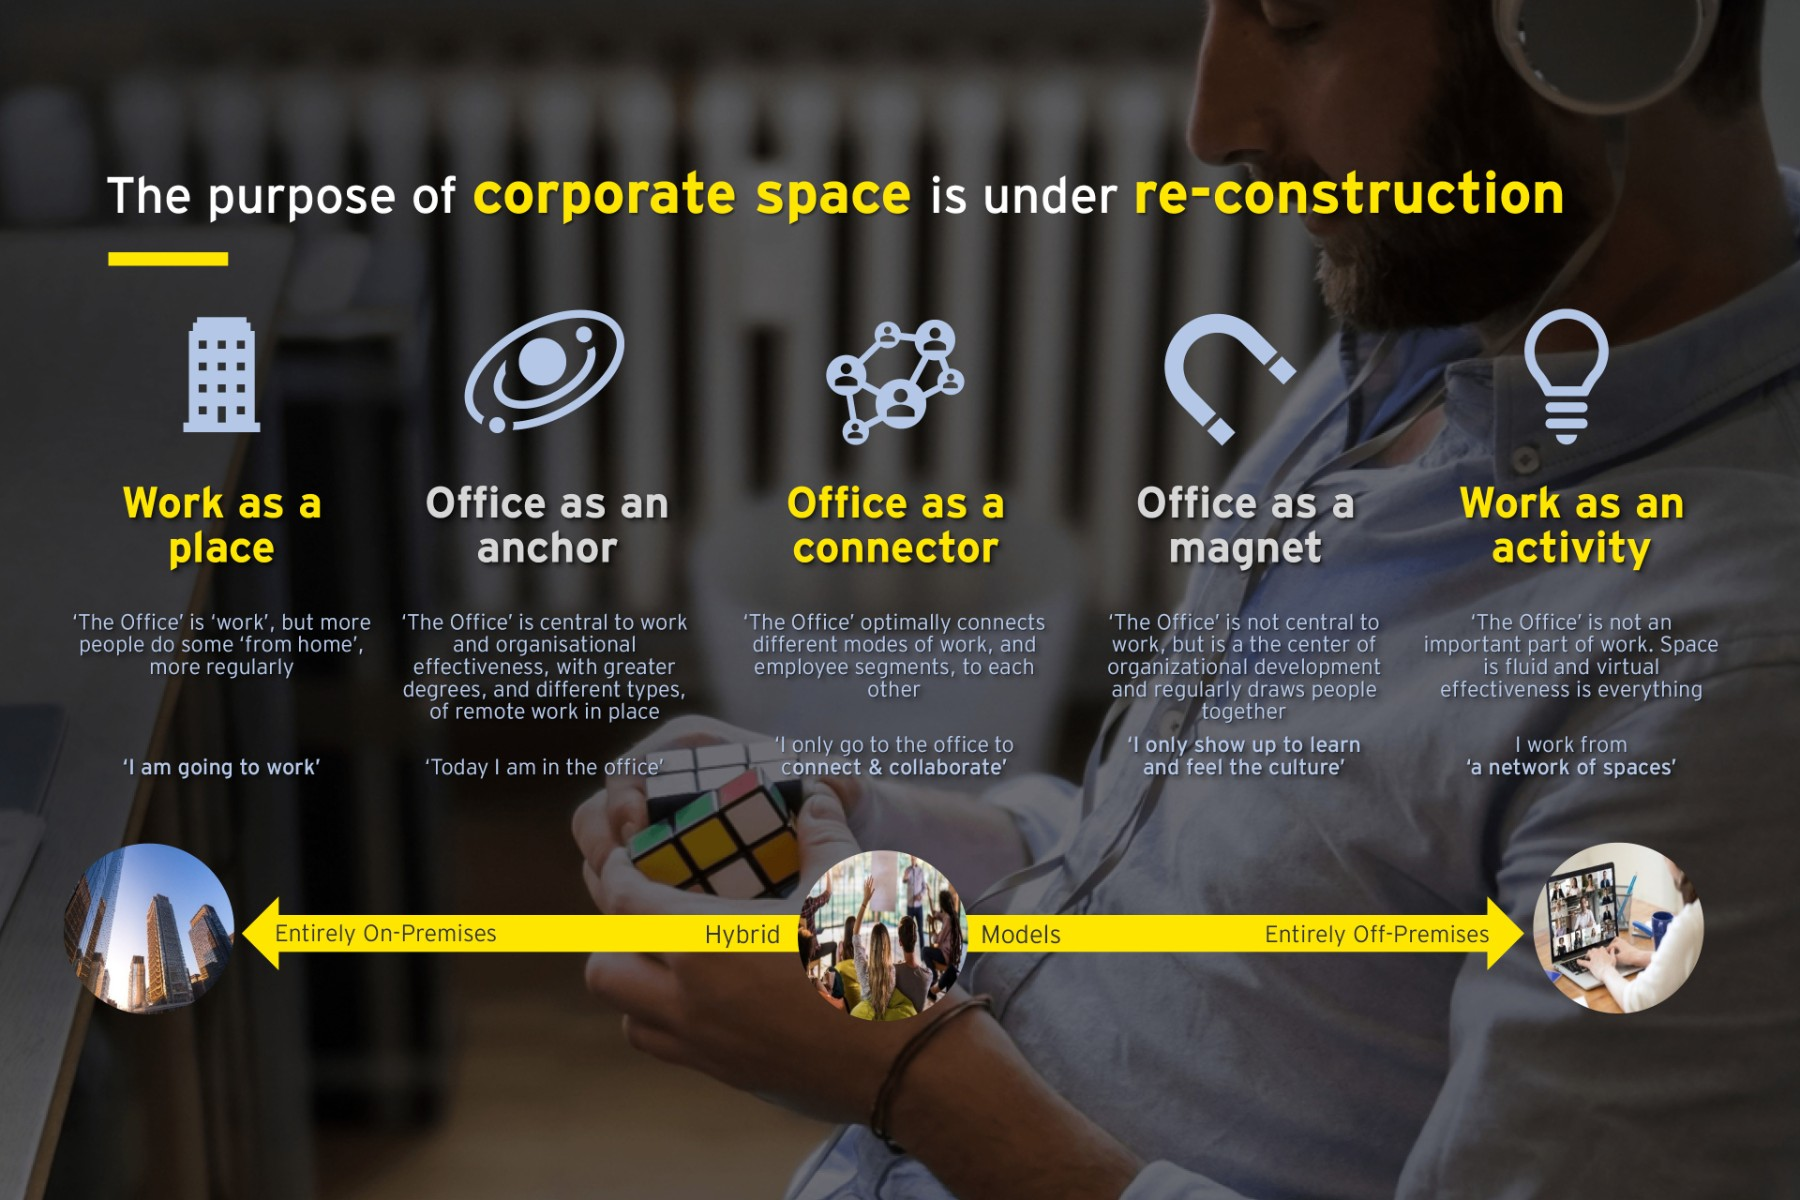 ey-article-work-reimagined-the-sustainable-and-inclusive-workplace-of-the-future-pic1.jpg.rendition.1800.1200